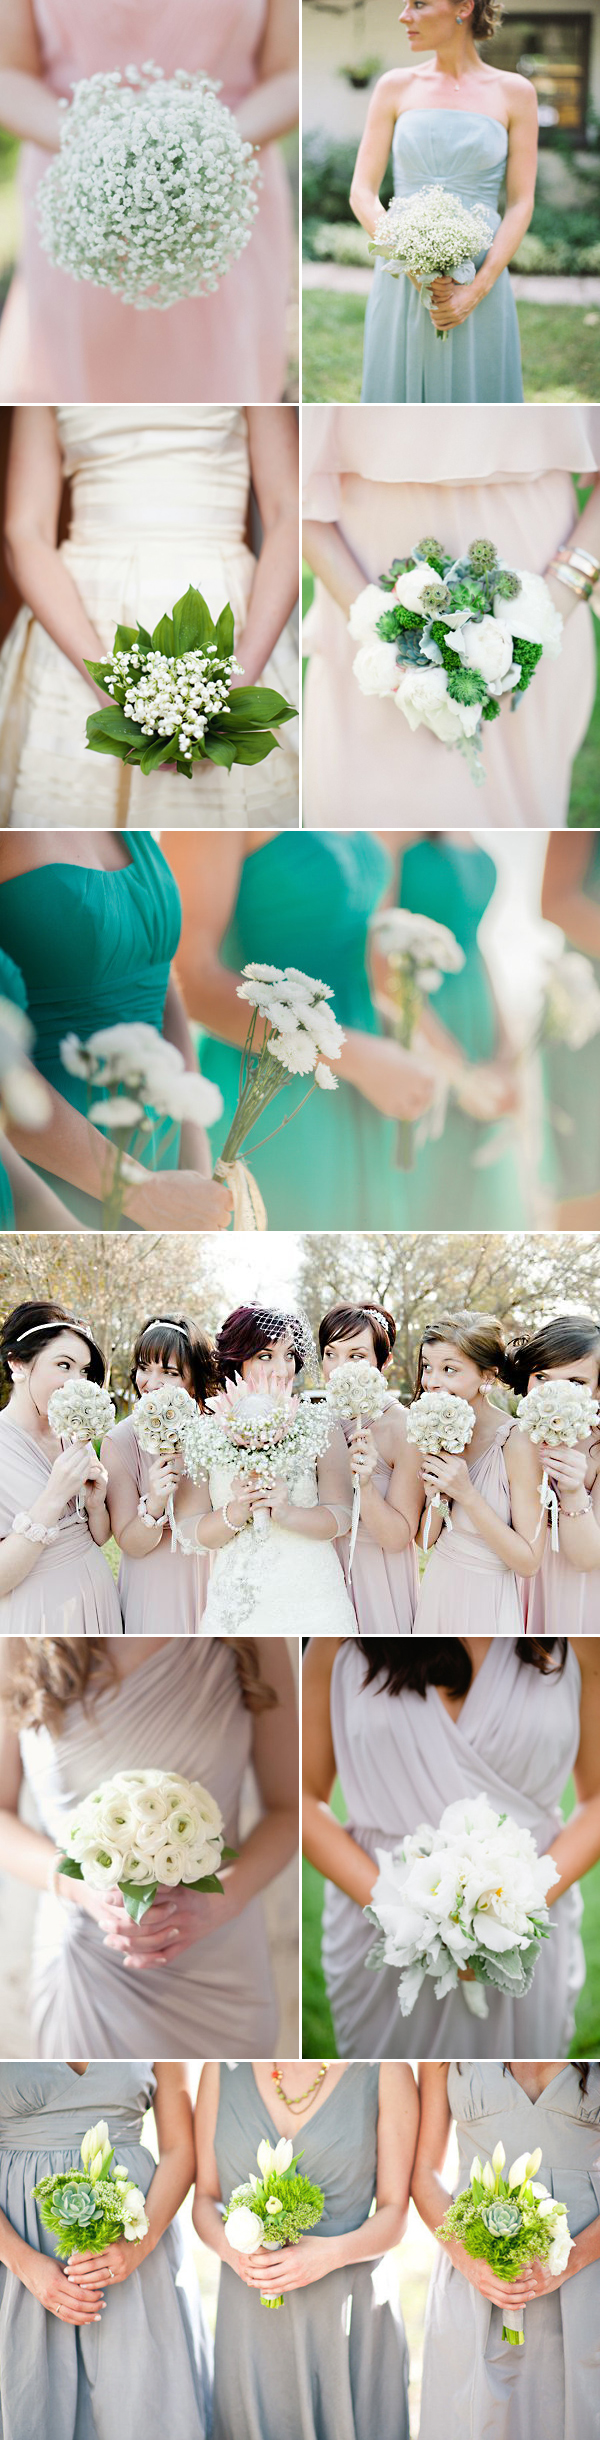 bridesmaid-bouquet02-white